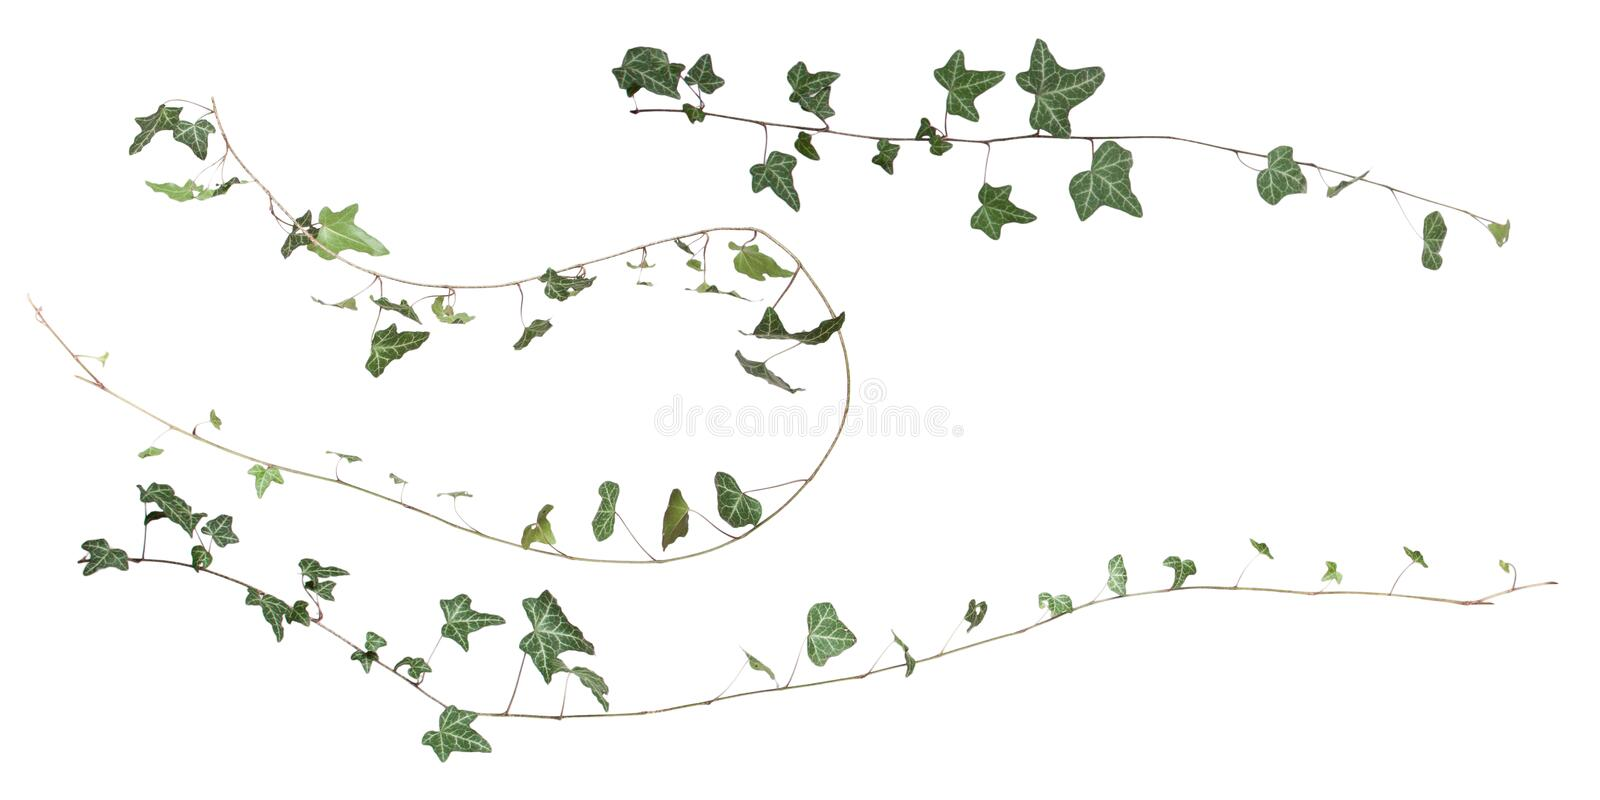 Hedera helix royalty free stock image